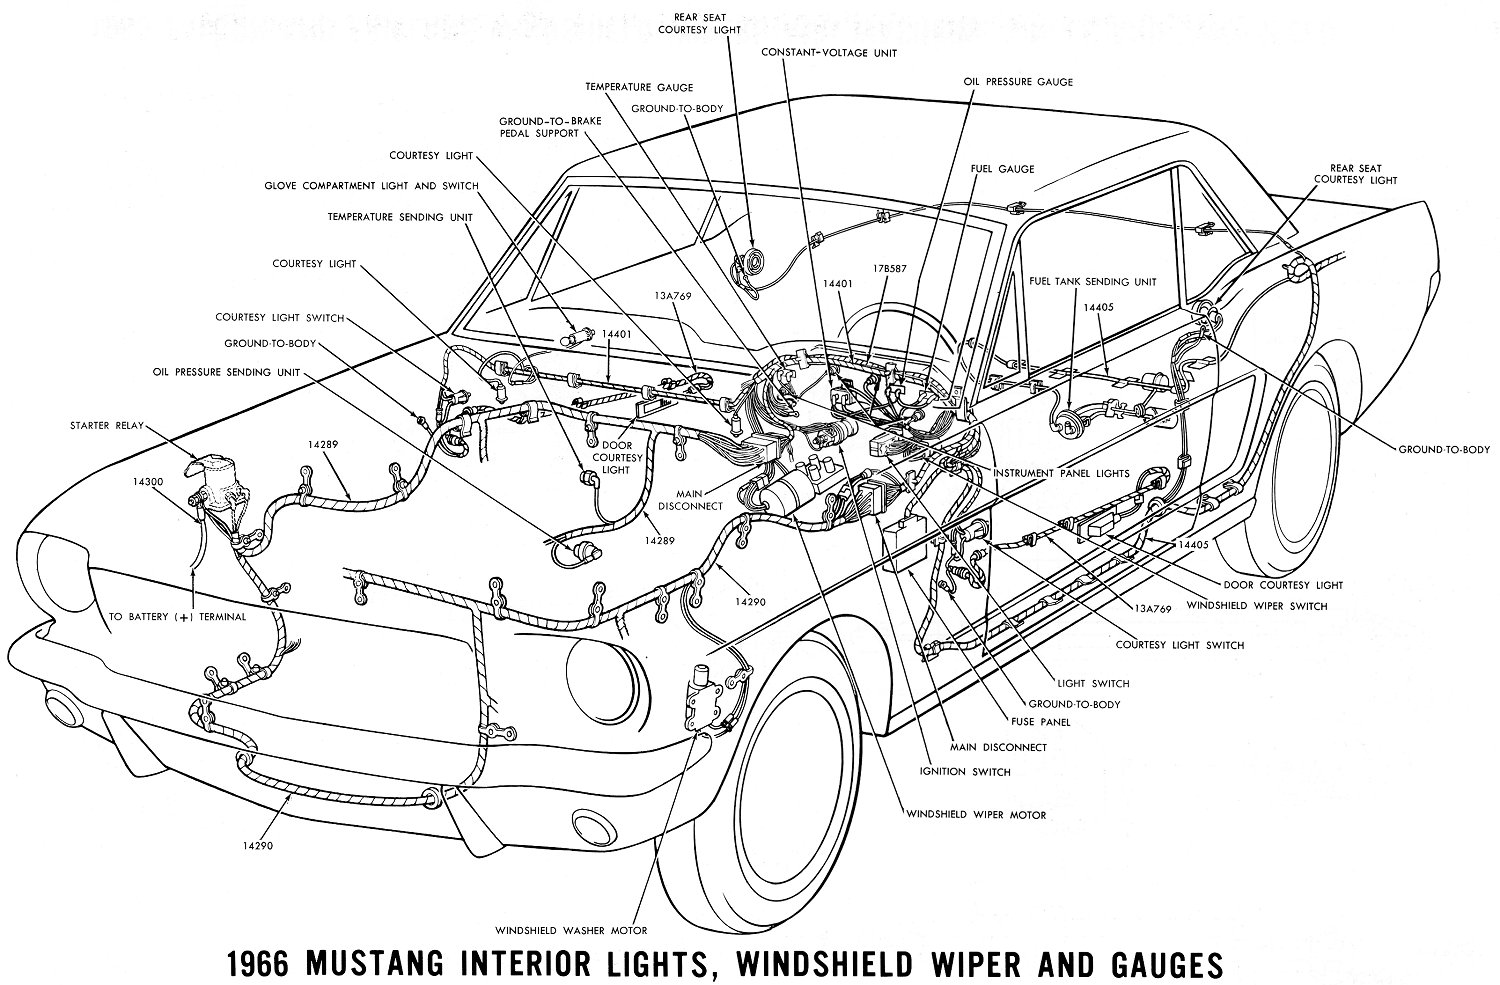 66inter 1966 mustang wiring diagrams average joe restoration 1968 mustang ignition wiring diagram at n-0.co